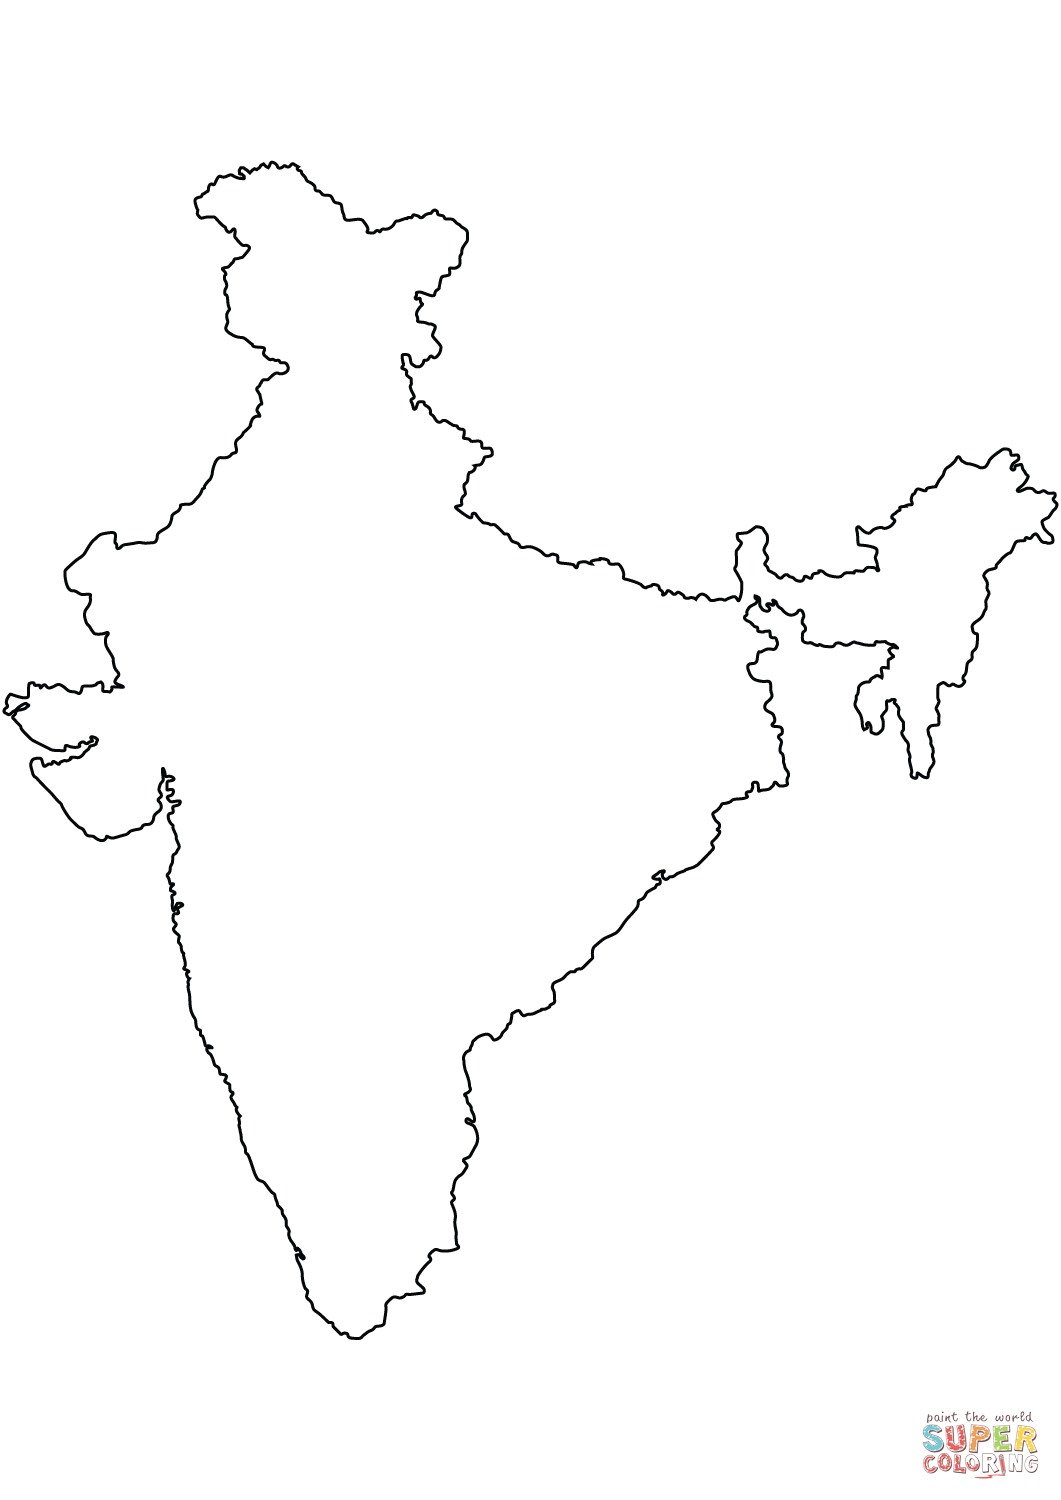 1061x1500 India Blank Outline Map Coloring Page Free Printable Coloring Pages